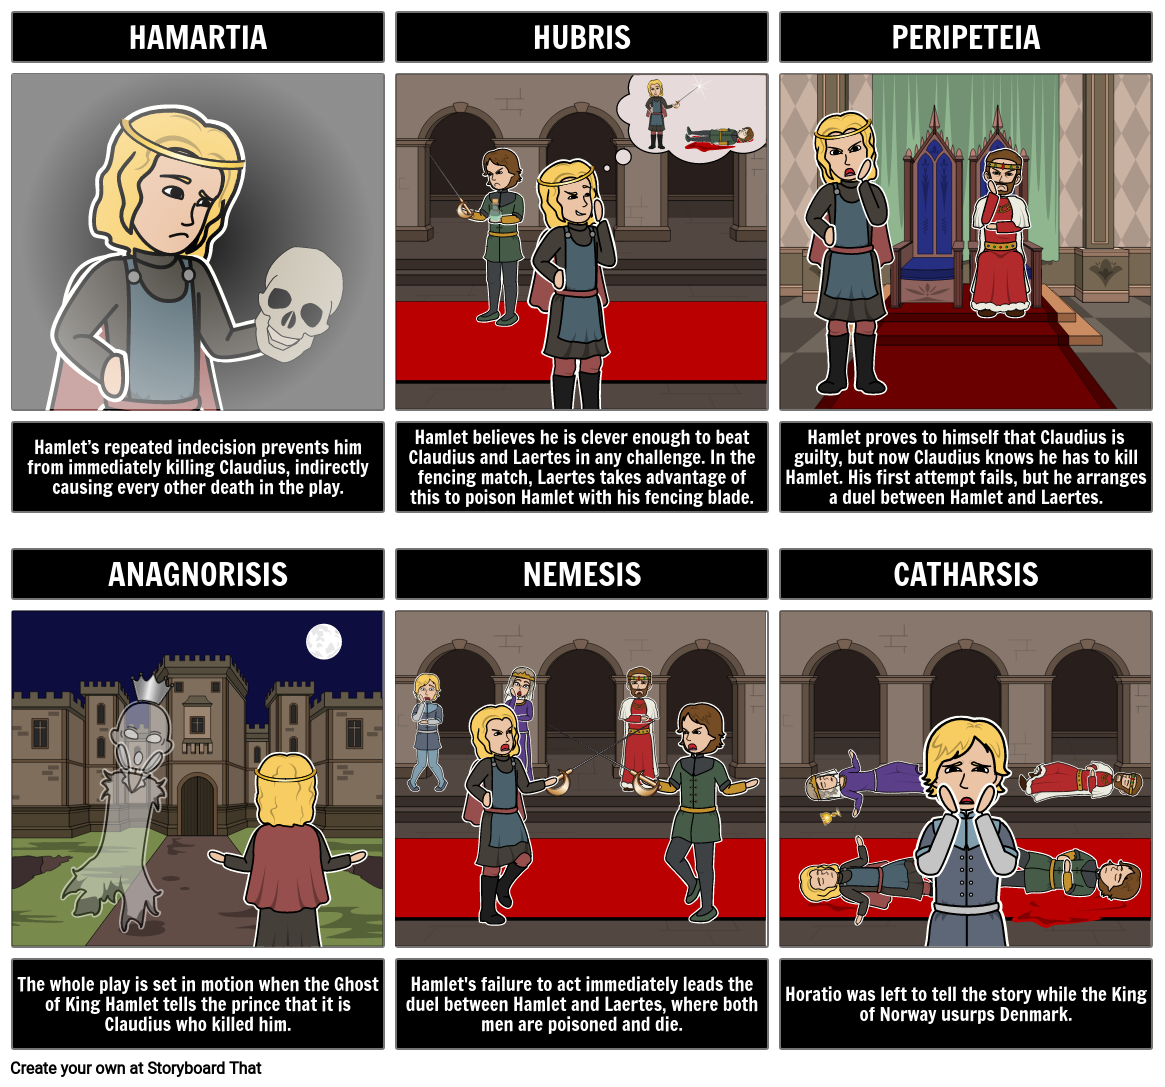 a plot summary william shakespeares play hamlet Professor regina buccola, chair of humanities at roosevelt university, provides an in-depth summary and analysis of william shakespeare's play hamlet.